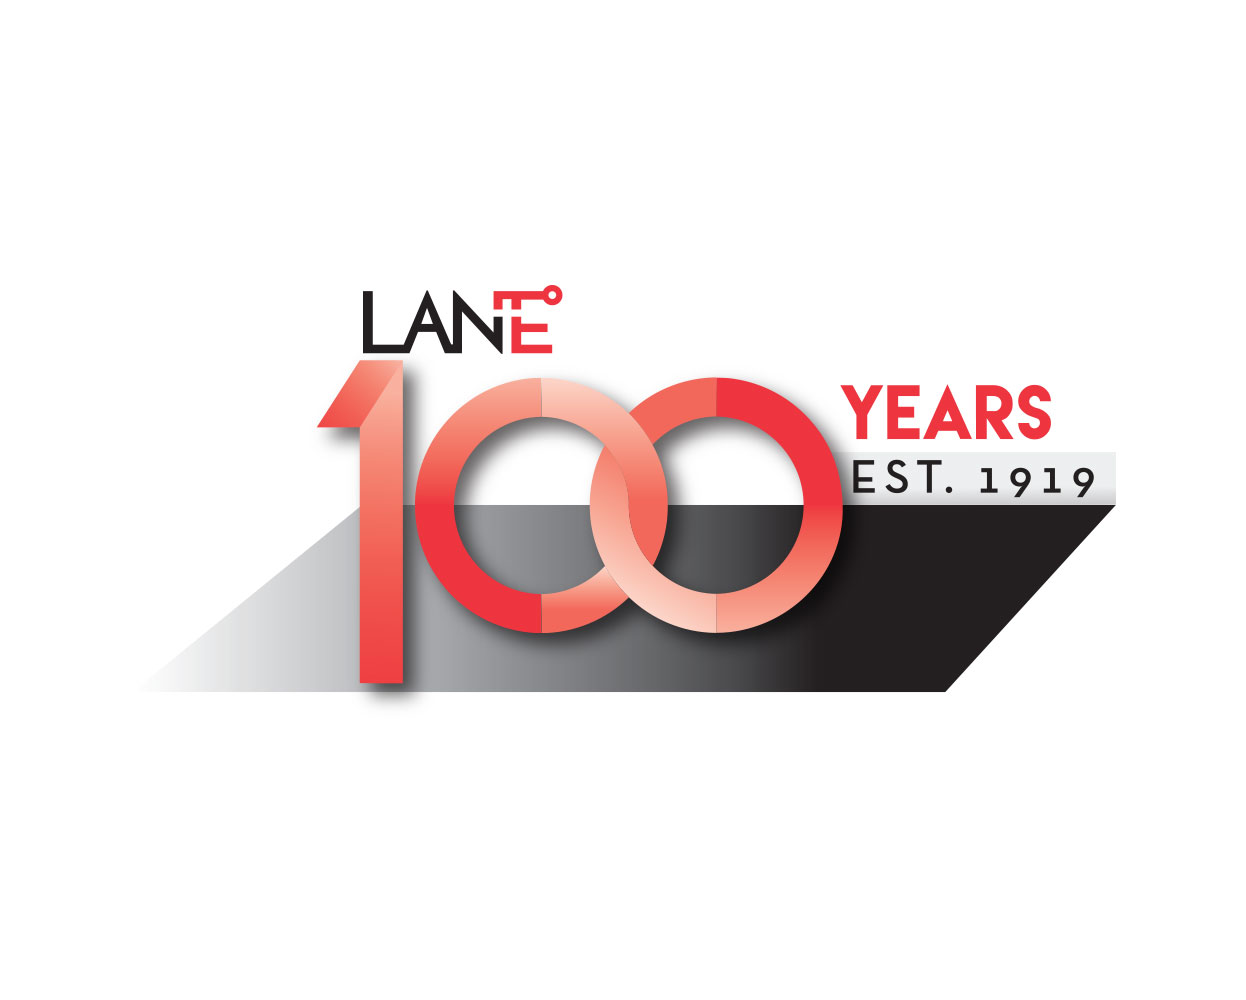 Lane 100 year logo